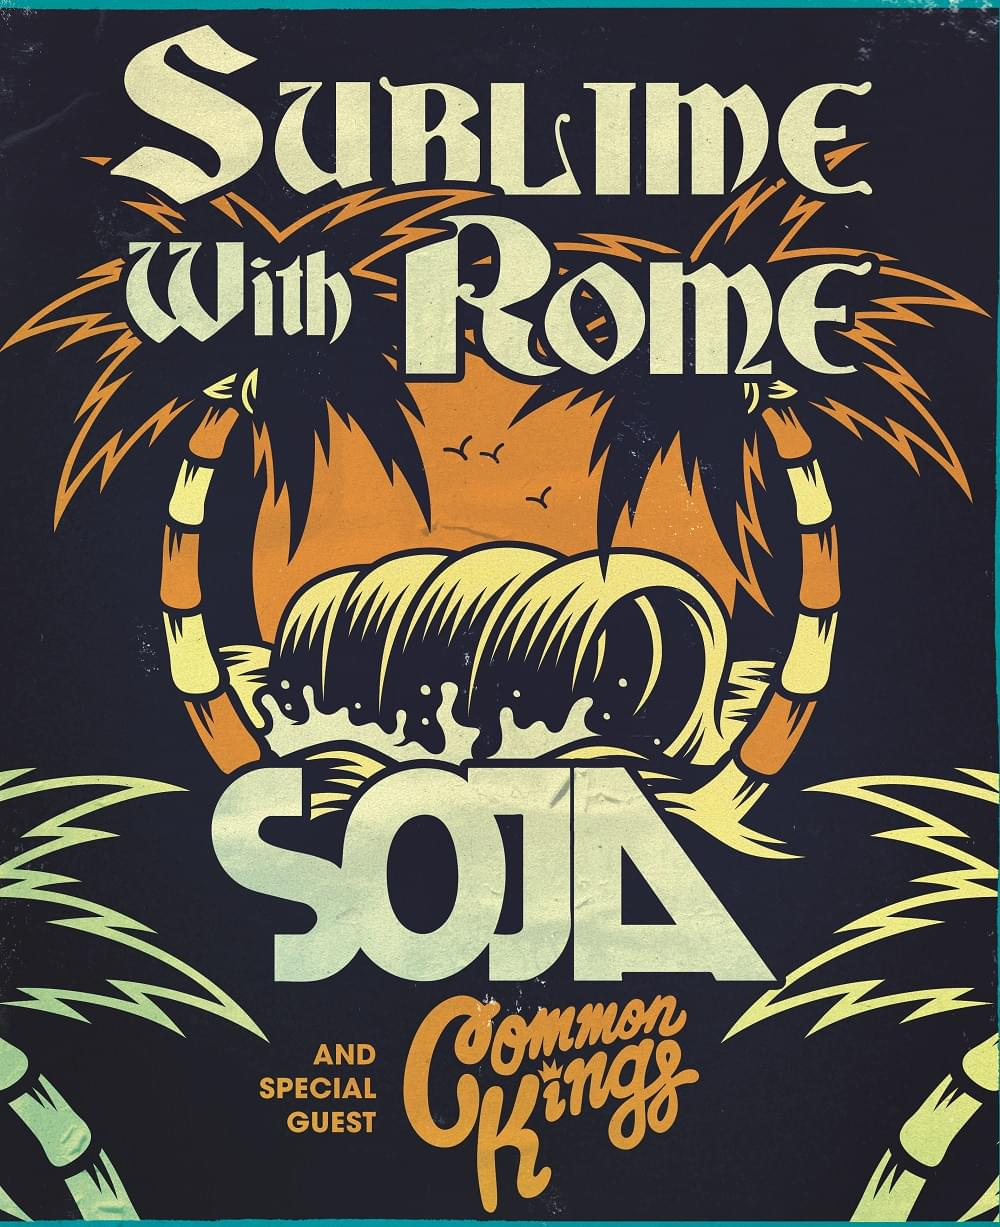 Win tickets to see Sublime with Rome, Soja and Special Guest Common Kings